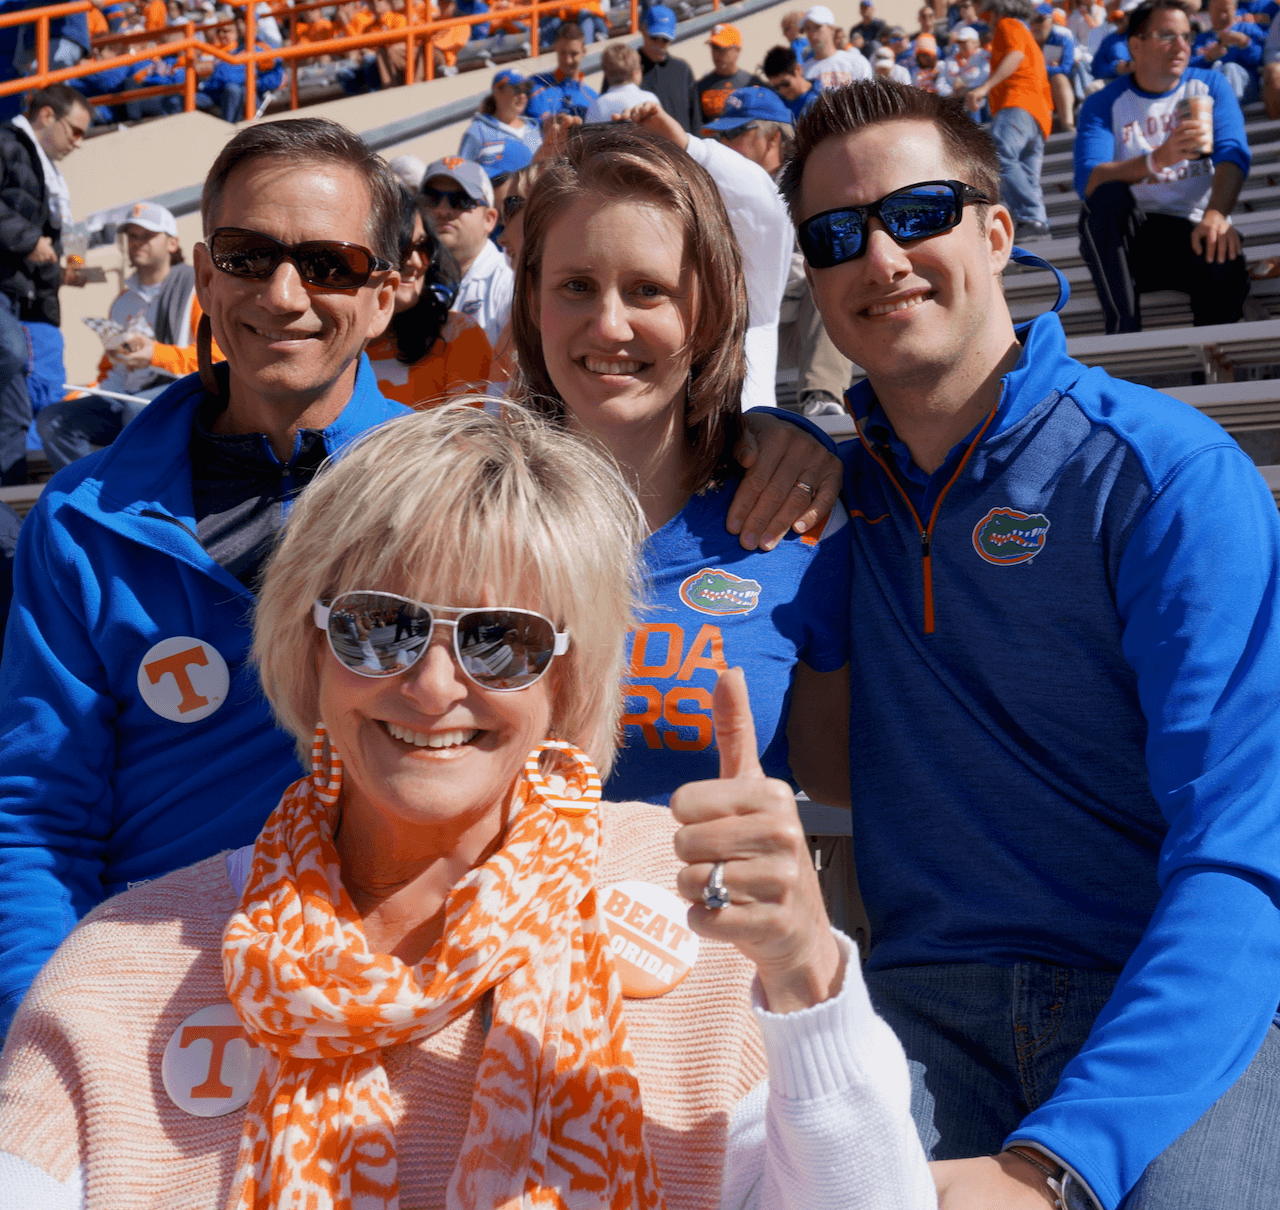 Dave, Lizzy, James and Kathy at Tennessee/ Florida game photo by Kathy Miller